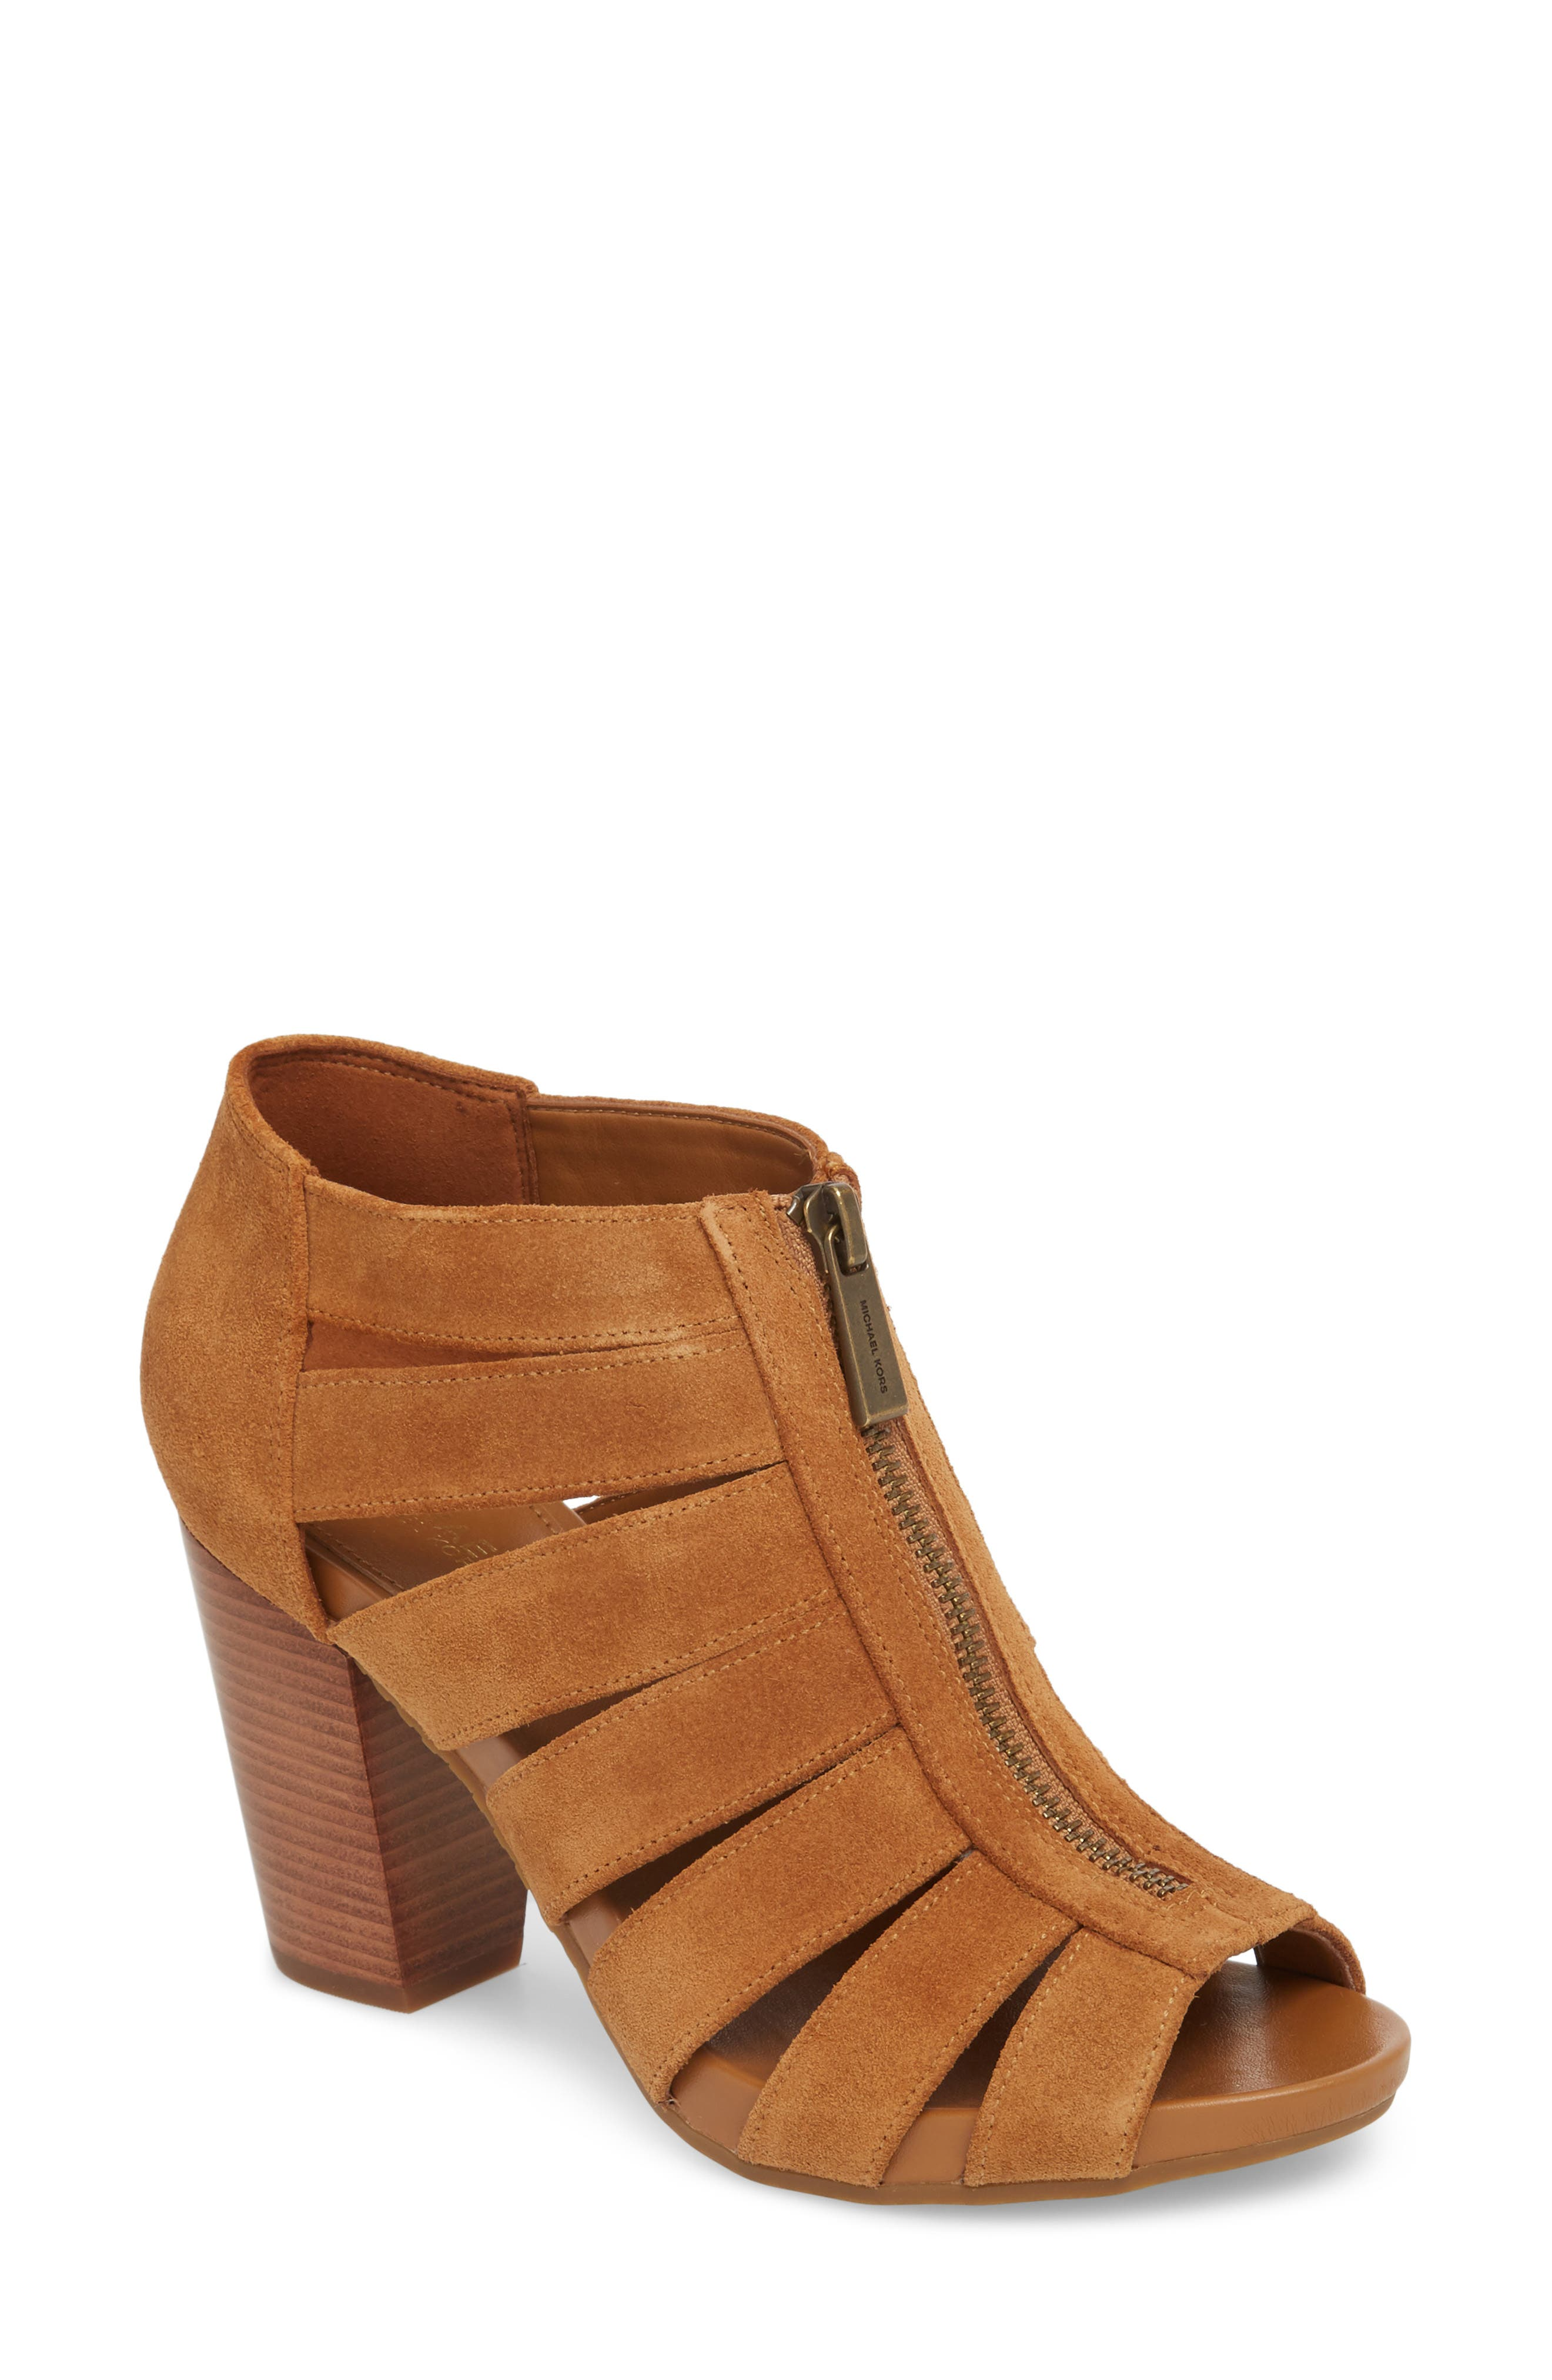 Sherry Cage Bootie,                         Main,                         color,